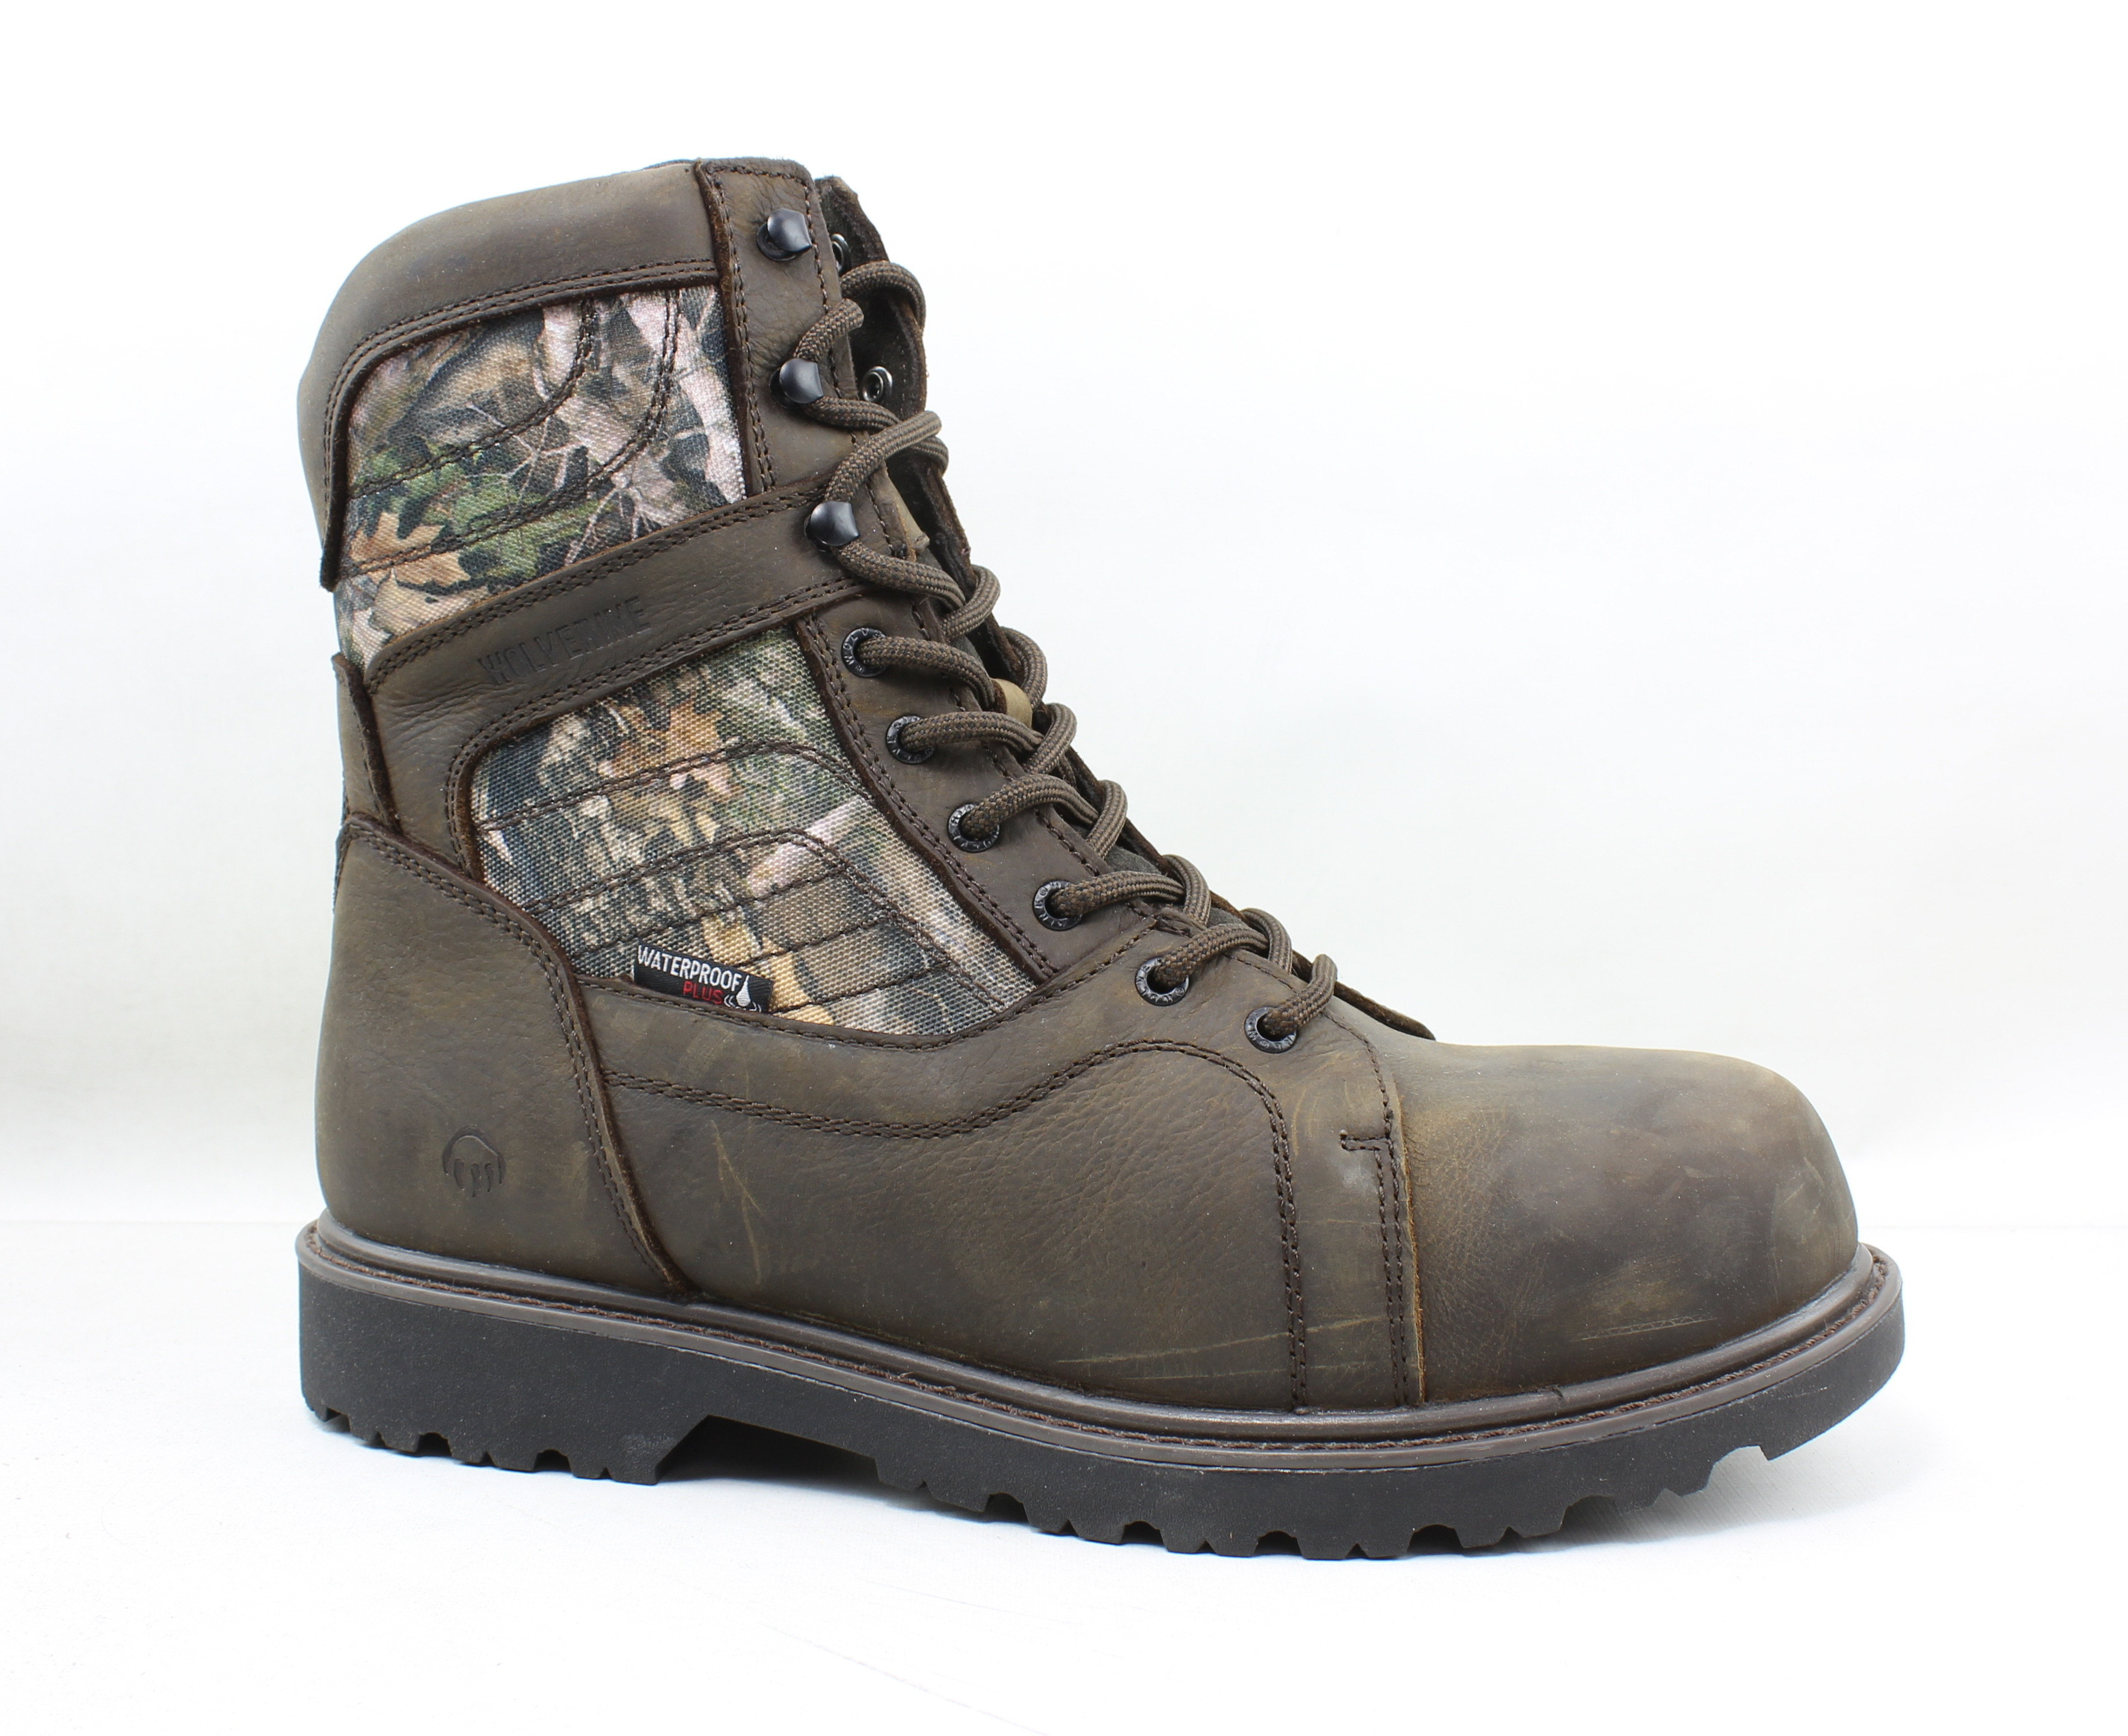 5738a0fd7ed Details about Wolverine Mens Blackhorn Brown Hunting Boots Size 12 (2E)  (278203)